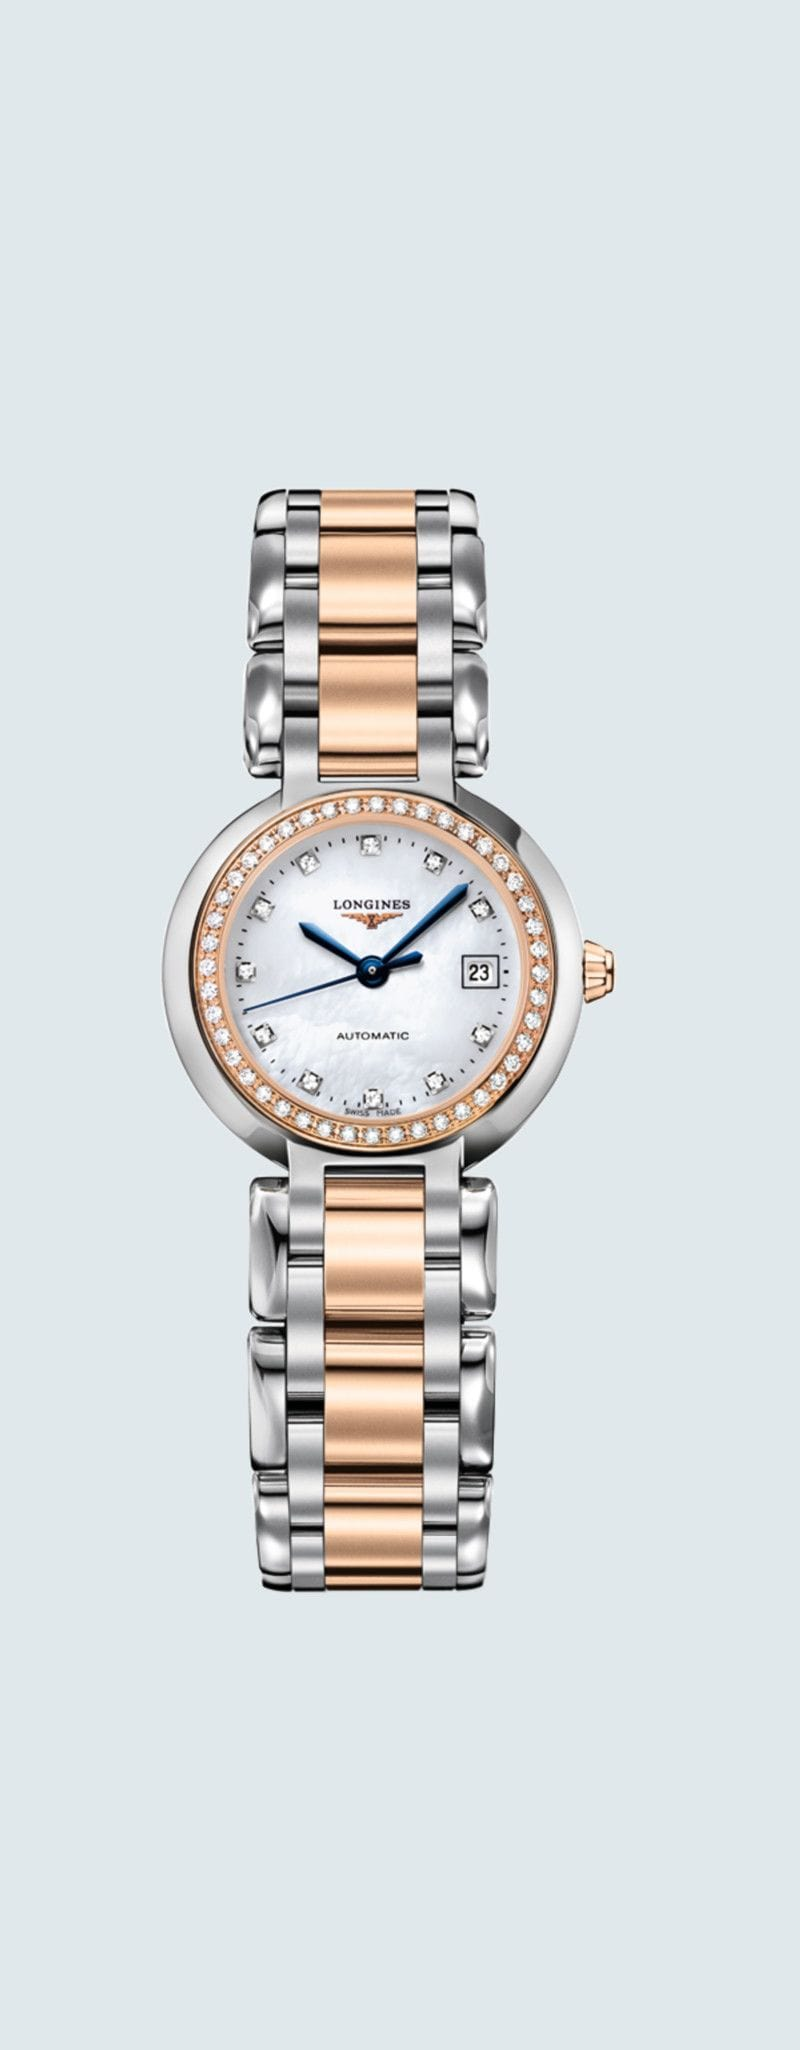 26.50 mm Stainless steel and 18 karat pink gold case with White mother-of-pearl dial and Stainless